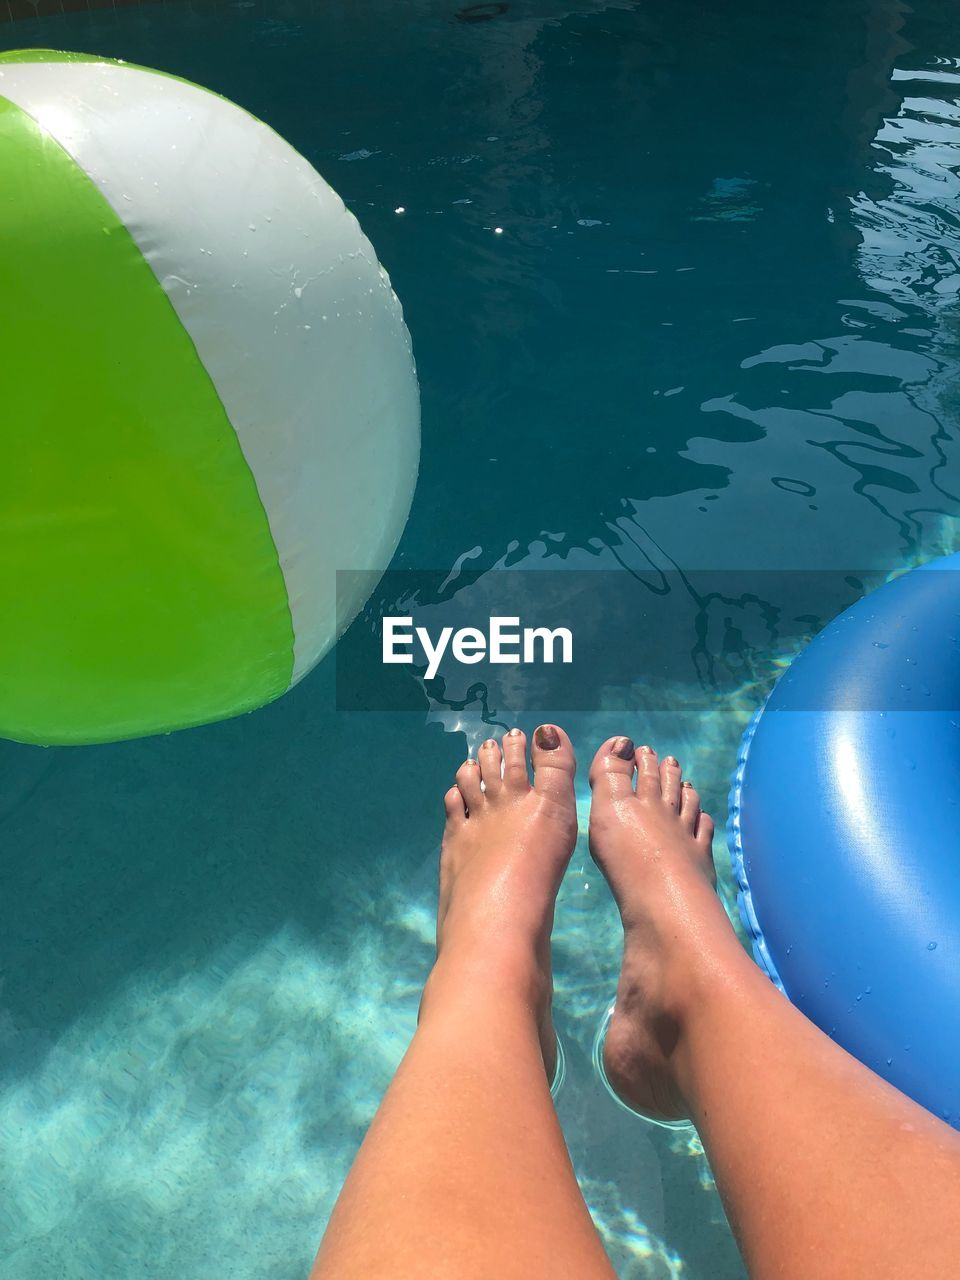 Pool day Pool Day  Summer Pool Time EyeEm Selects Low Section Human Leg Water Human Body Part Body Part Human Foot barefoot Swimming Pool Women Outdoors Pool